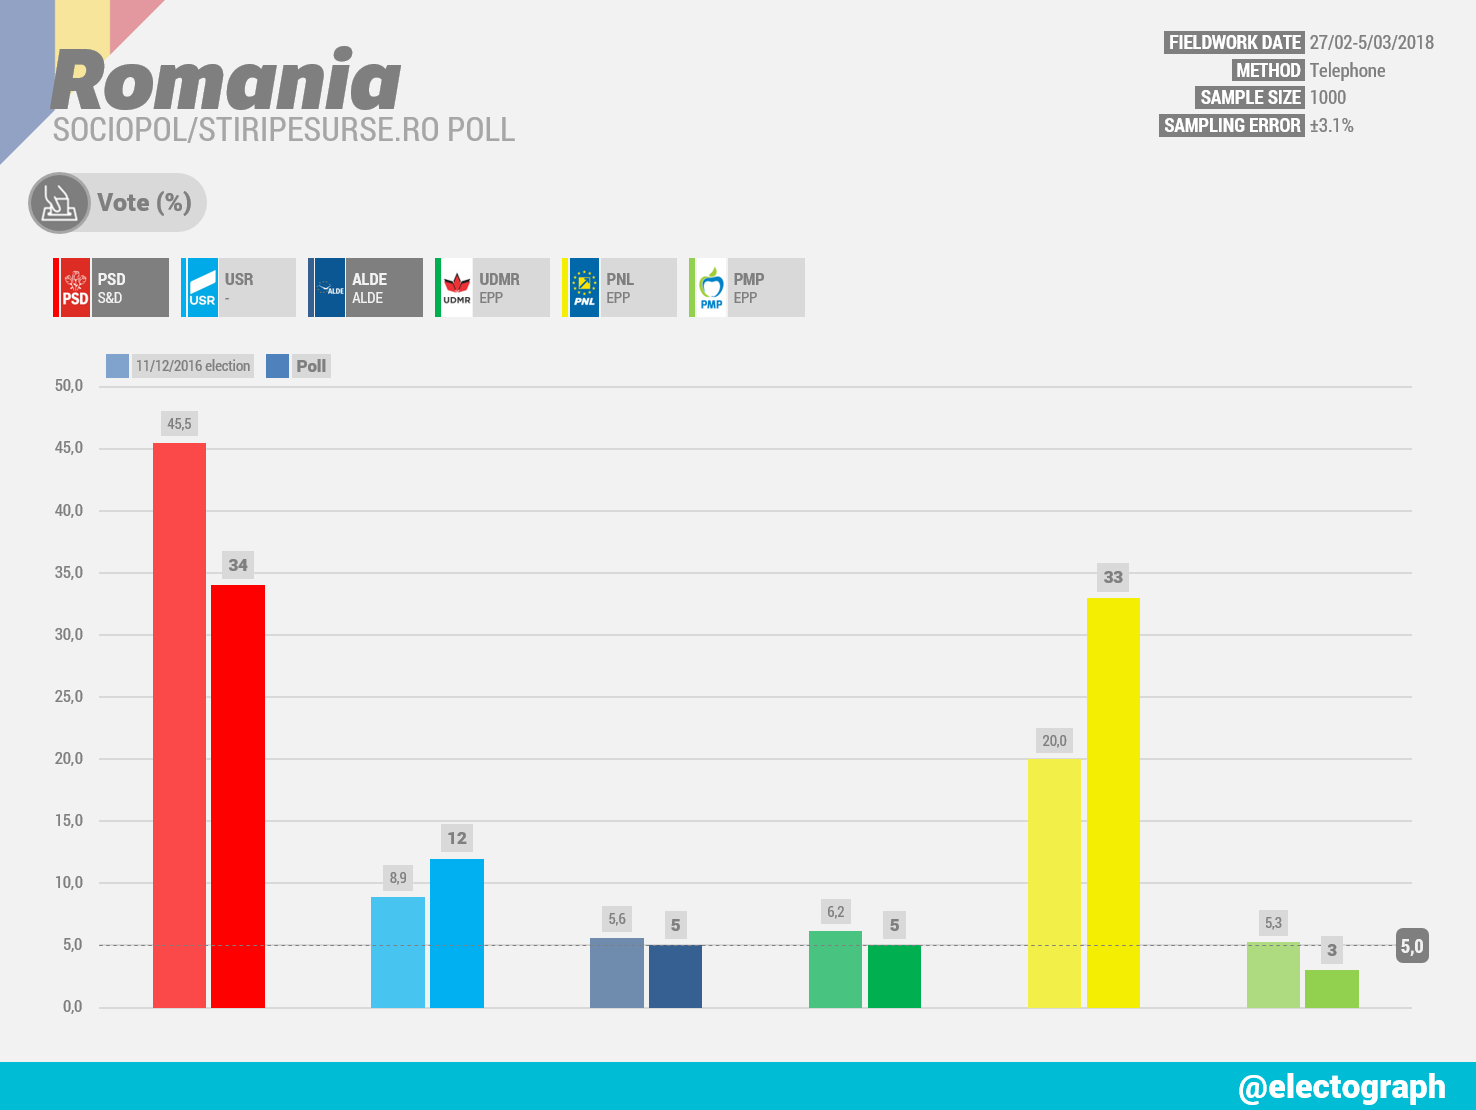 ROMANIA Sociopol poll chart for stiripesurse.ro, March 2018